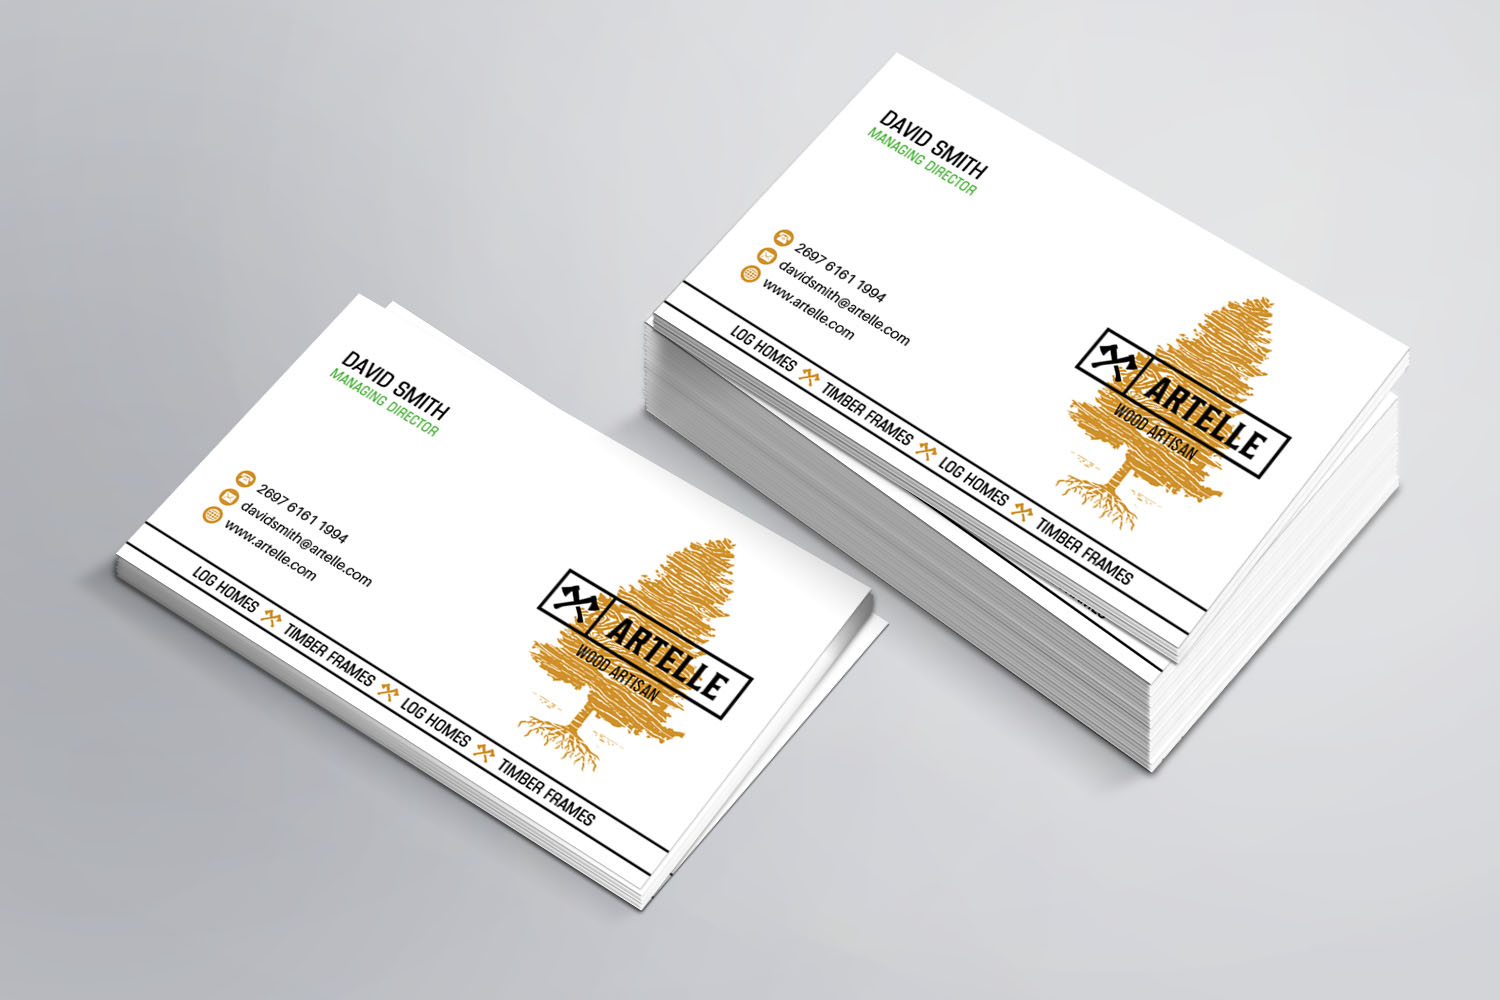 Masculine upmarket construction business card design for a company business card design by sandaruwan for this project design 16499800 colourmoves